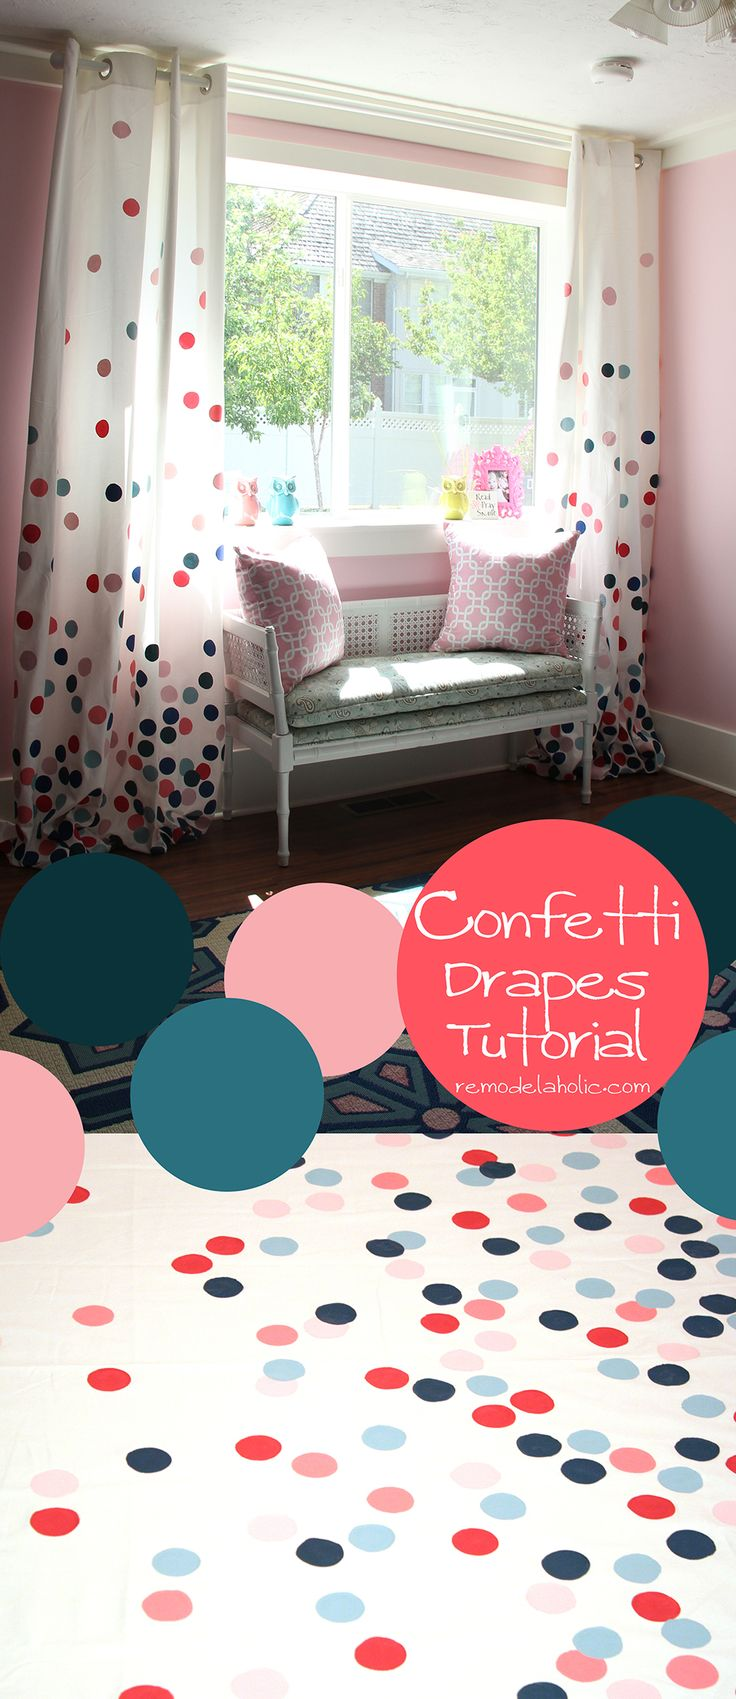 Polka dot drapes/ Confetti drapes tutorial girls room! Pink and Navy remodelaholic.com #confetti #polka_dots #drapes